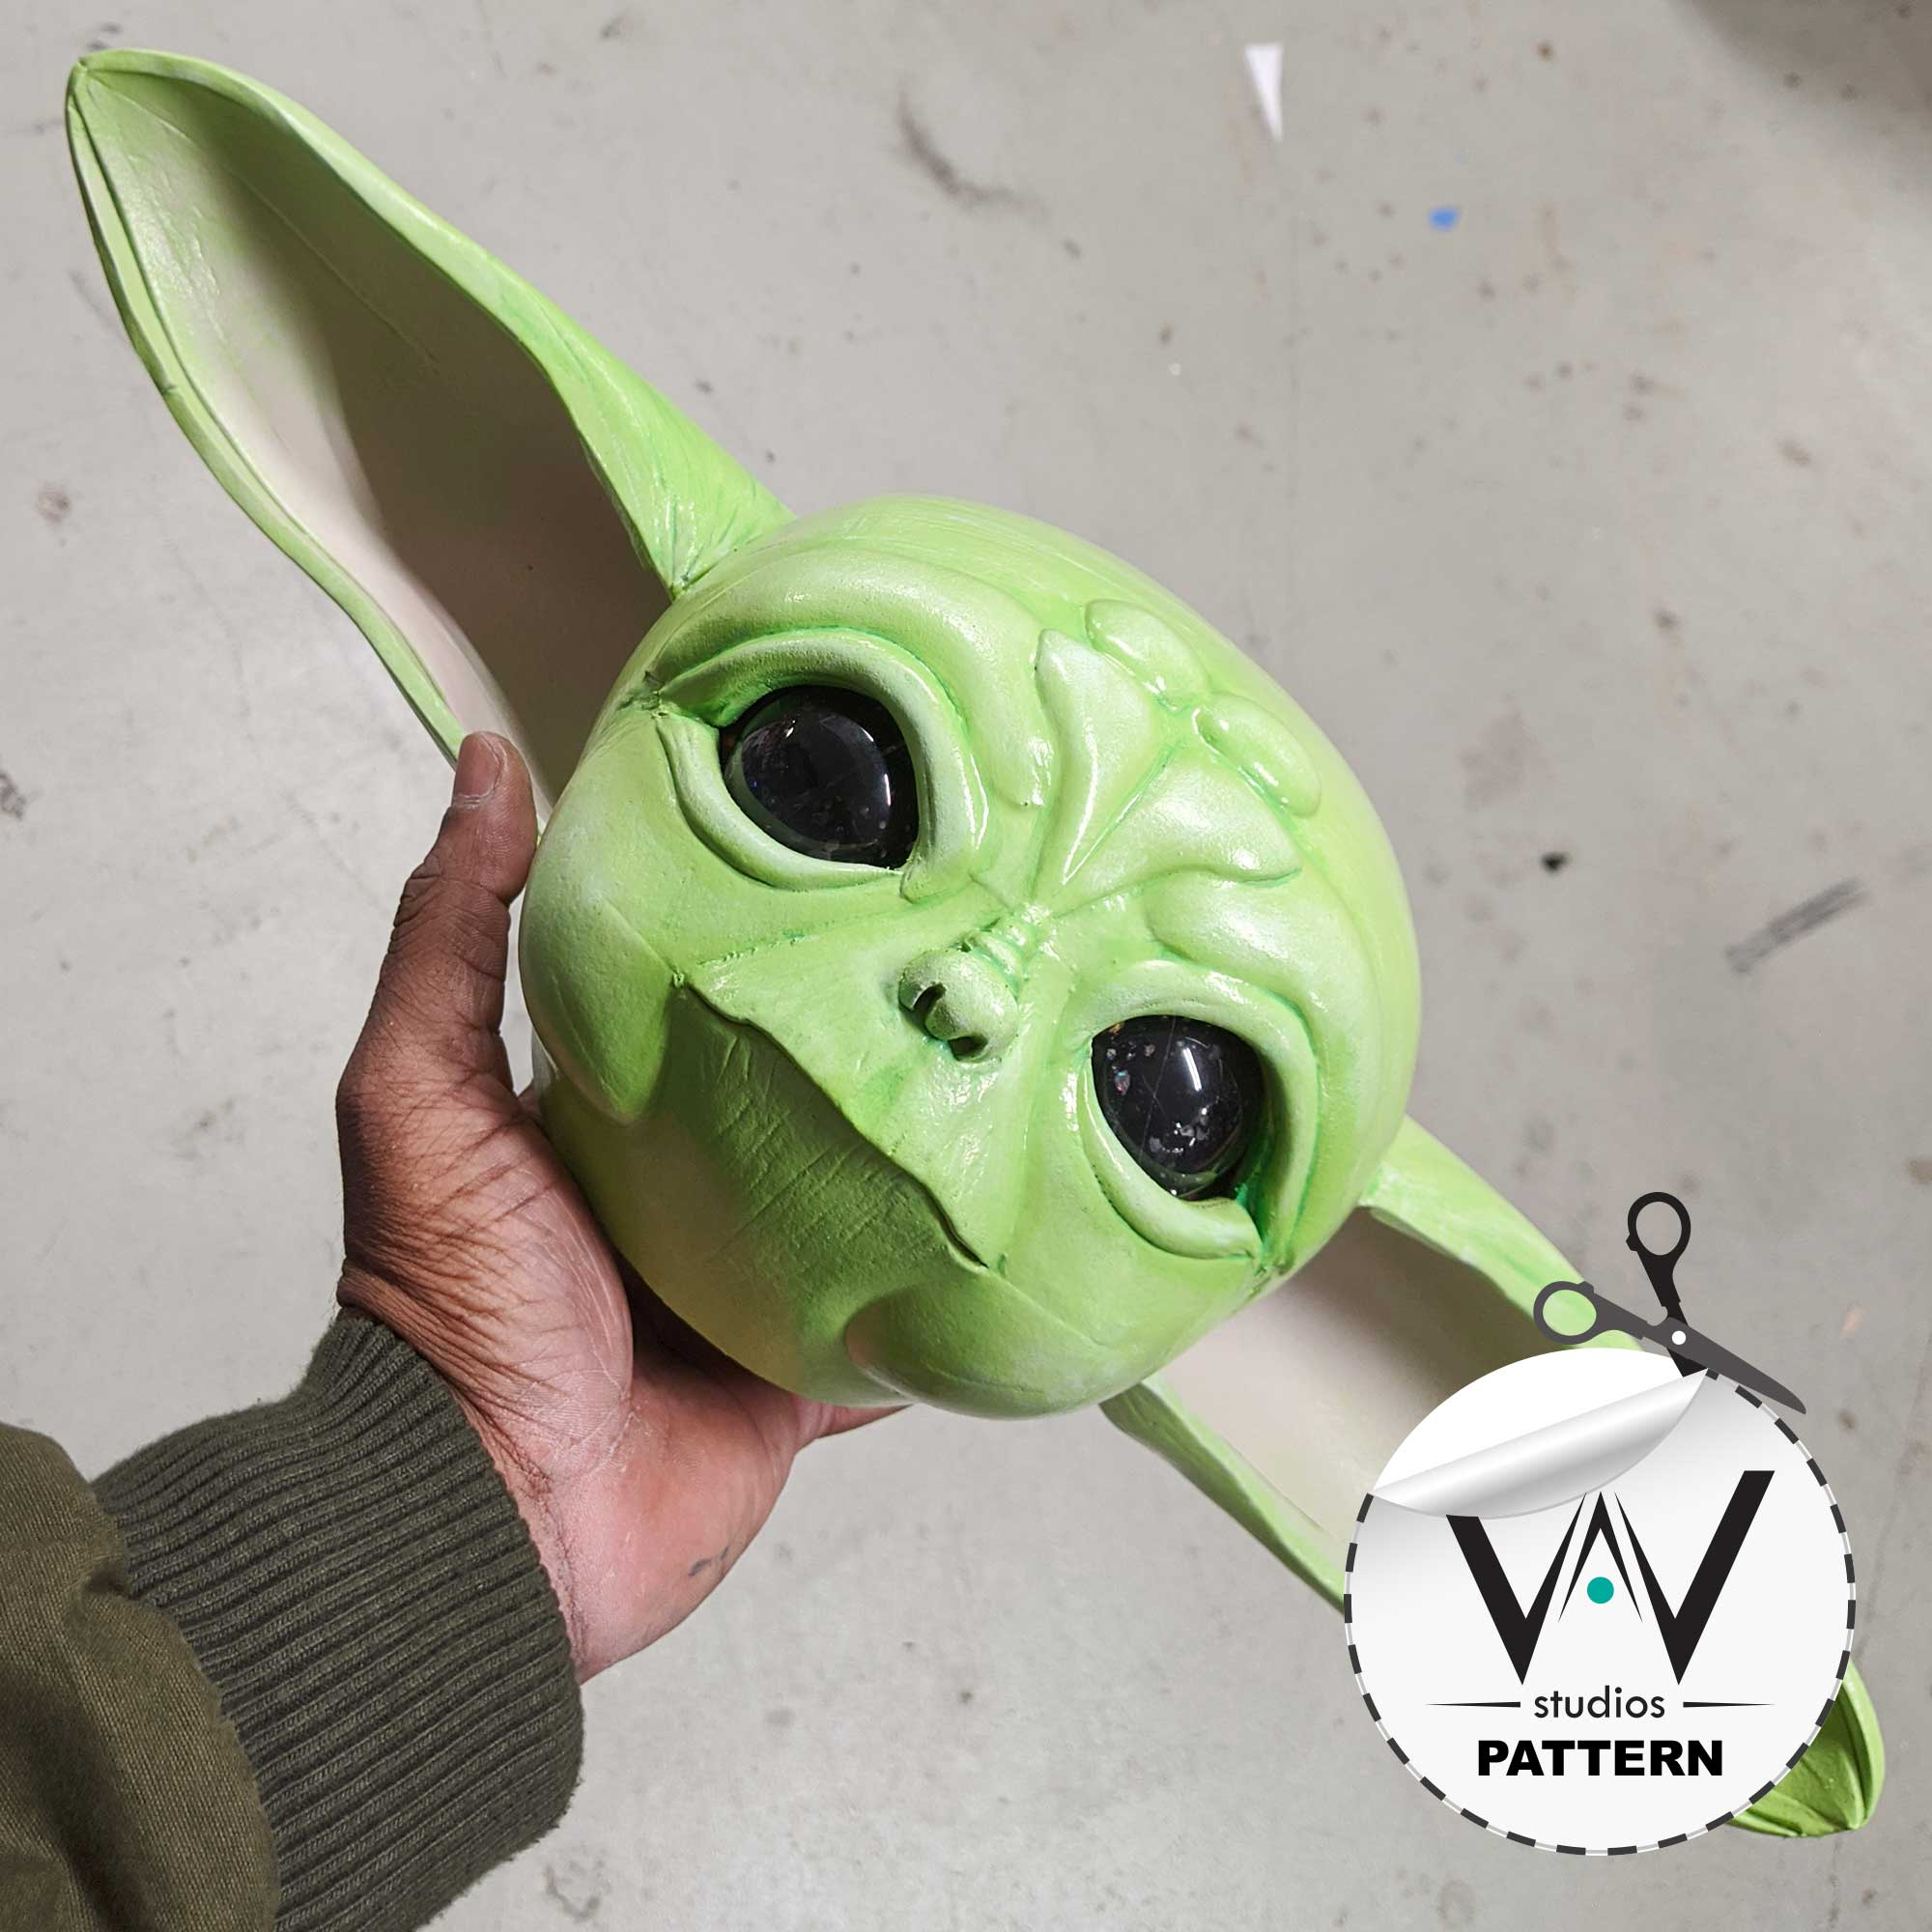 Baby Yoda Head Patterns The Mandalorian Givewave Studios • baby yoda (floating in a pod) — parry gripp — artwork by nathan mazur. baby yoda head patterns the mandalorian